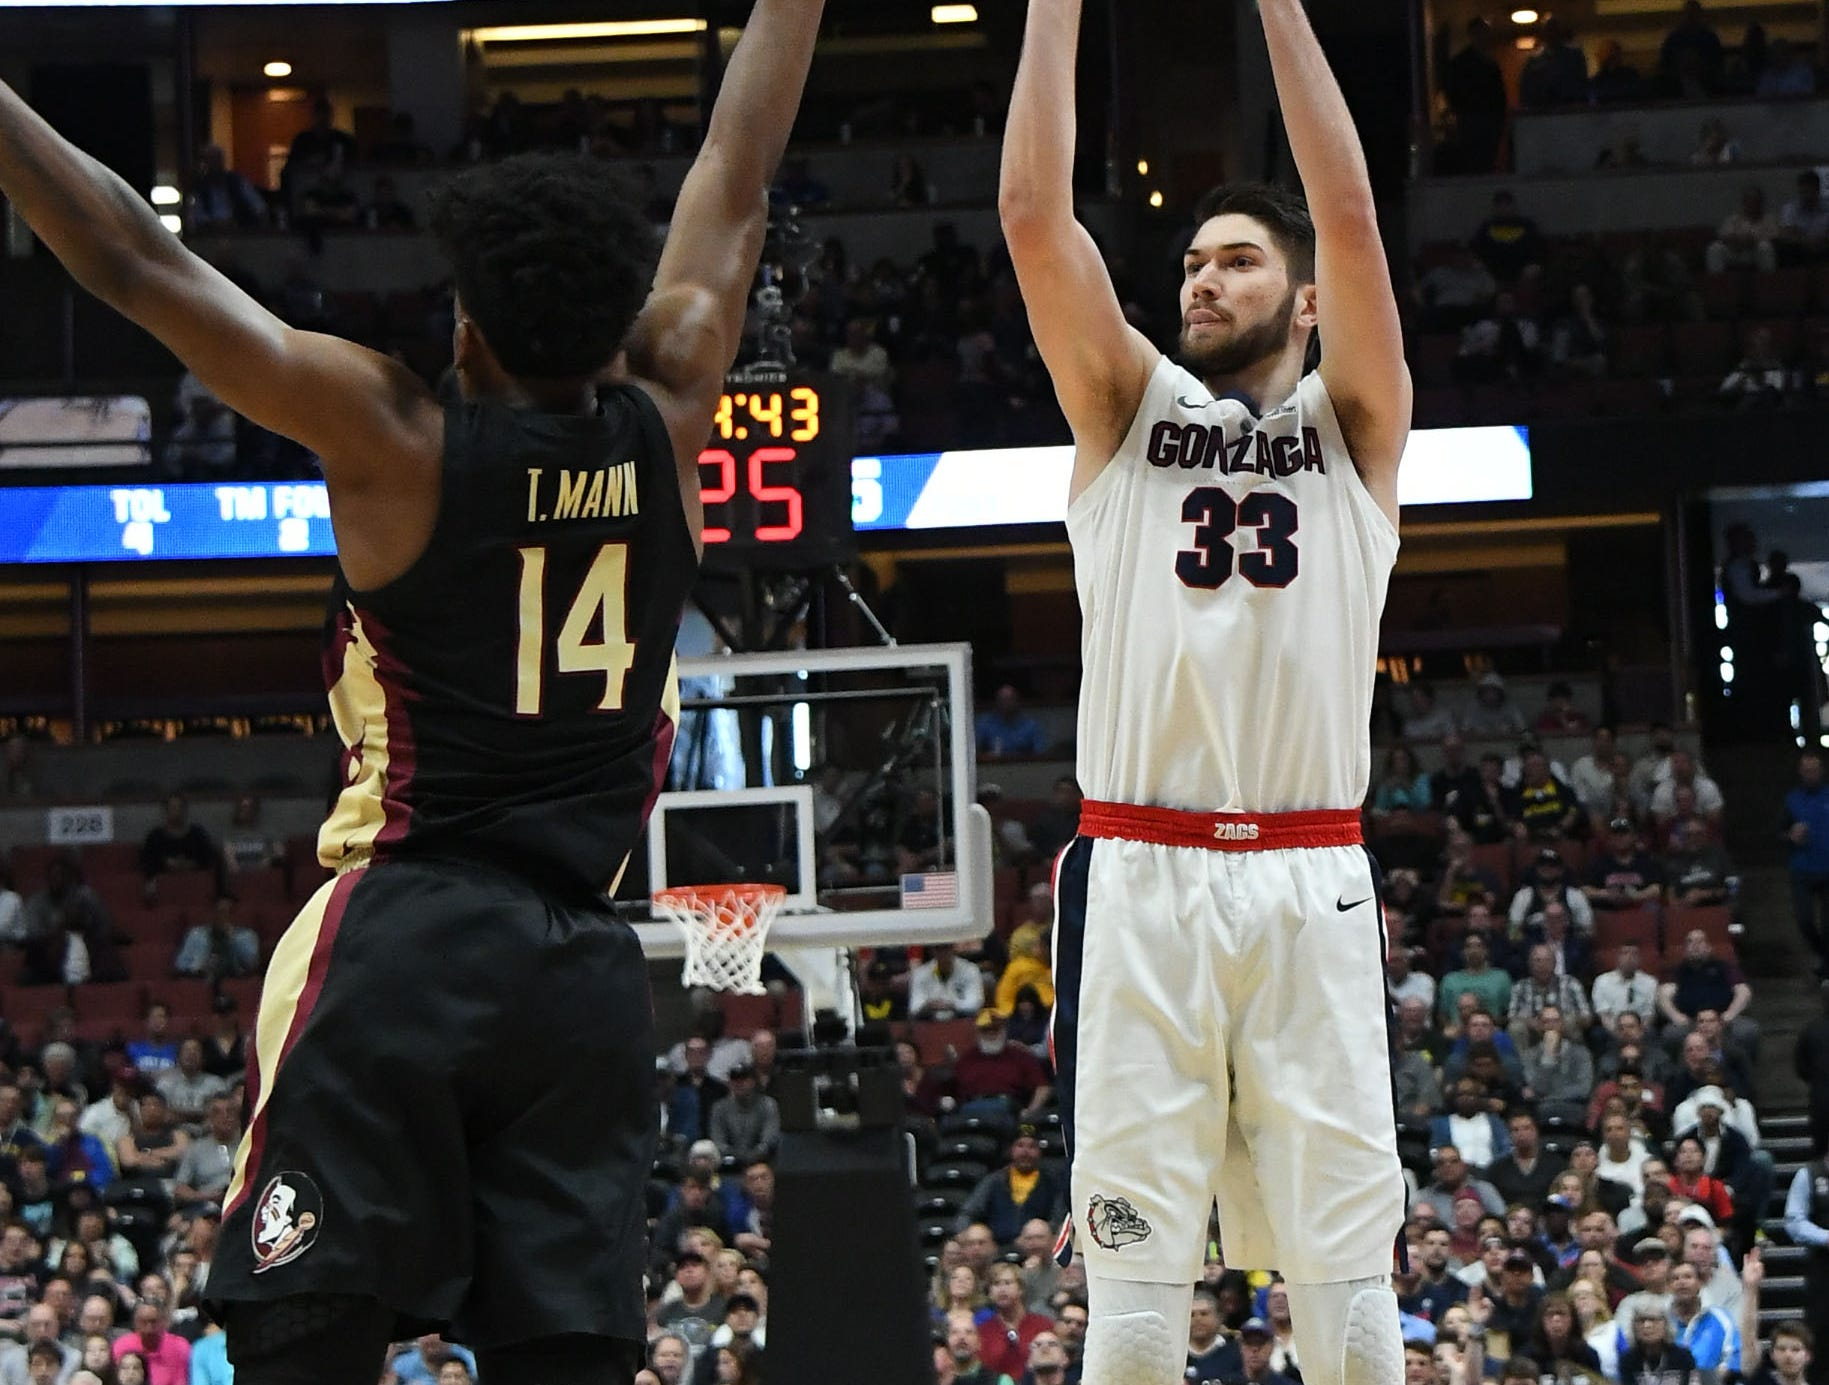 March 28, 2019; Anaheim, CA, USA; Gonzaga Bulldogs forward Killian Tillie (33) shoots against Florida State Seminoles guard Terance Mann (14) during the first half in the semifinals of the west regional of the 2019 NCAA Tournament at Honda Center. Mandatory Credit: Richard Mackson-USA TODAY Sports